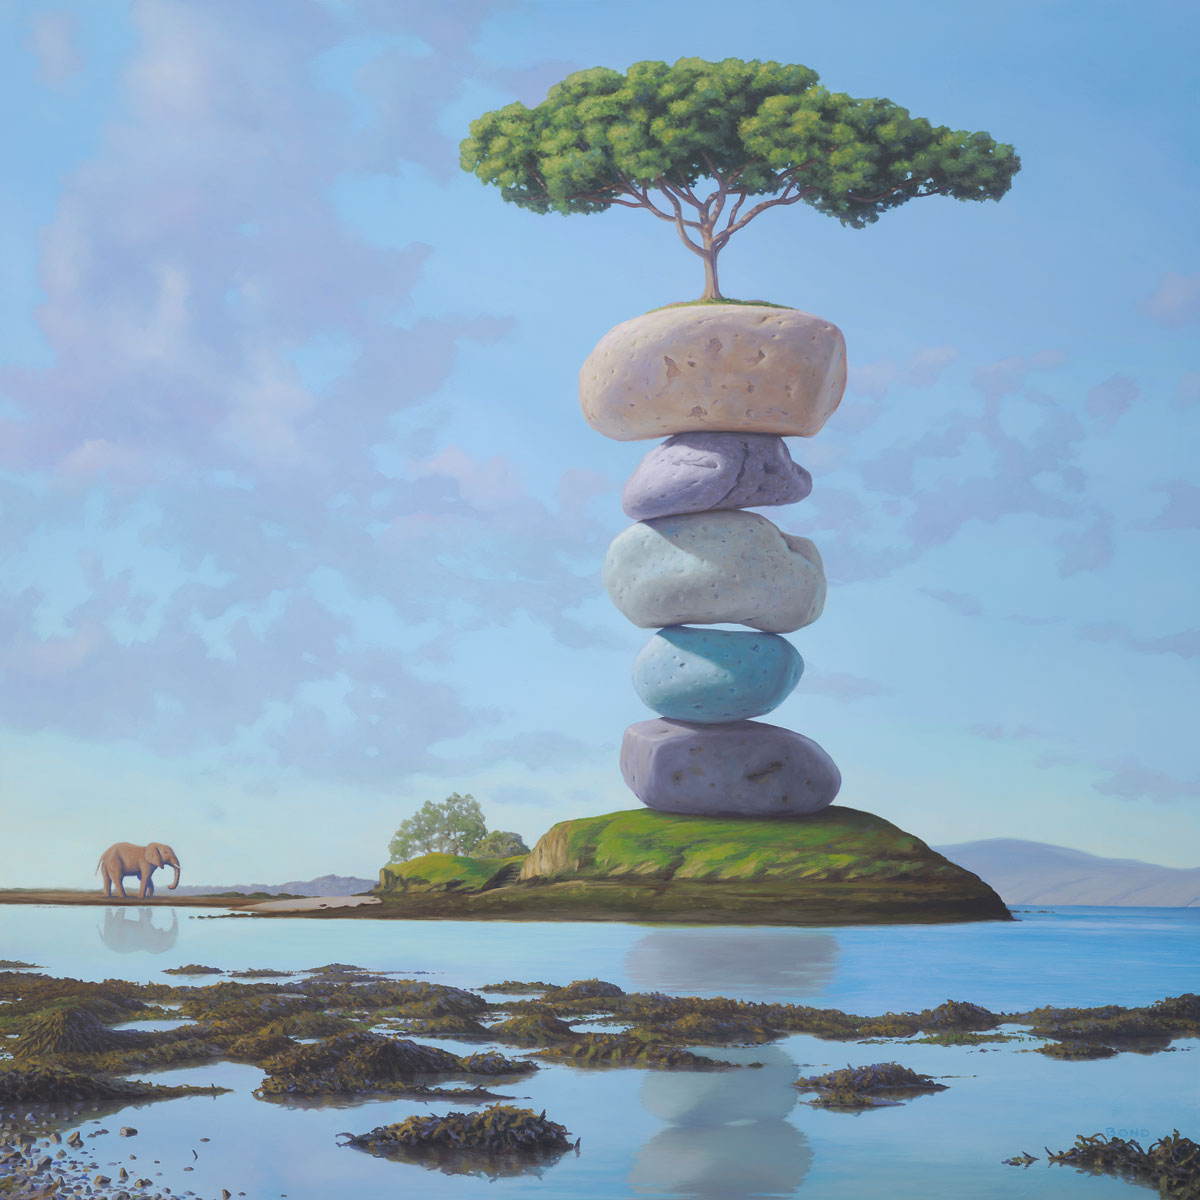 Approaching the Sacred, painting of elephant approaching bonzai tree sitting on top of colorful stacked stones, art with elephant, art with cairn, art about sacfred holy reverence, soulful uplifting inspirational art, soul stirring illusion art, romantic art,  surrealism, surreal art, dreamlike imagery, fanciful art, fantasy art, dreamscape visual, metaphysical art, spiritual painting, metaphysical painting, spiritual art, whimsical art, whimsy art, dream art, fantastic realism art, limited edition giclee, signed art print, fine art reproduction, original magic realism oil painting by Paul Bond